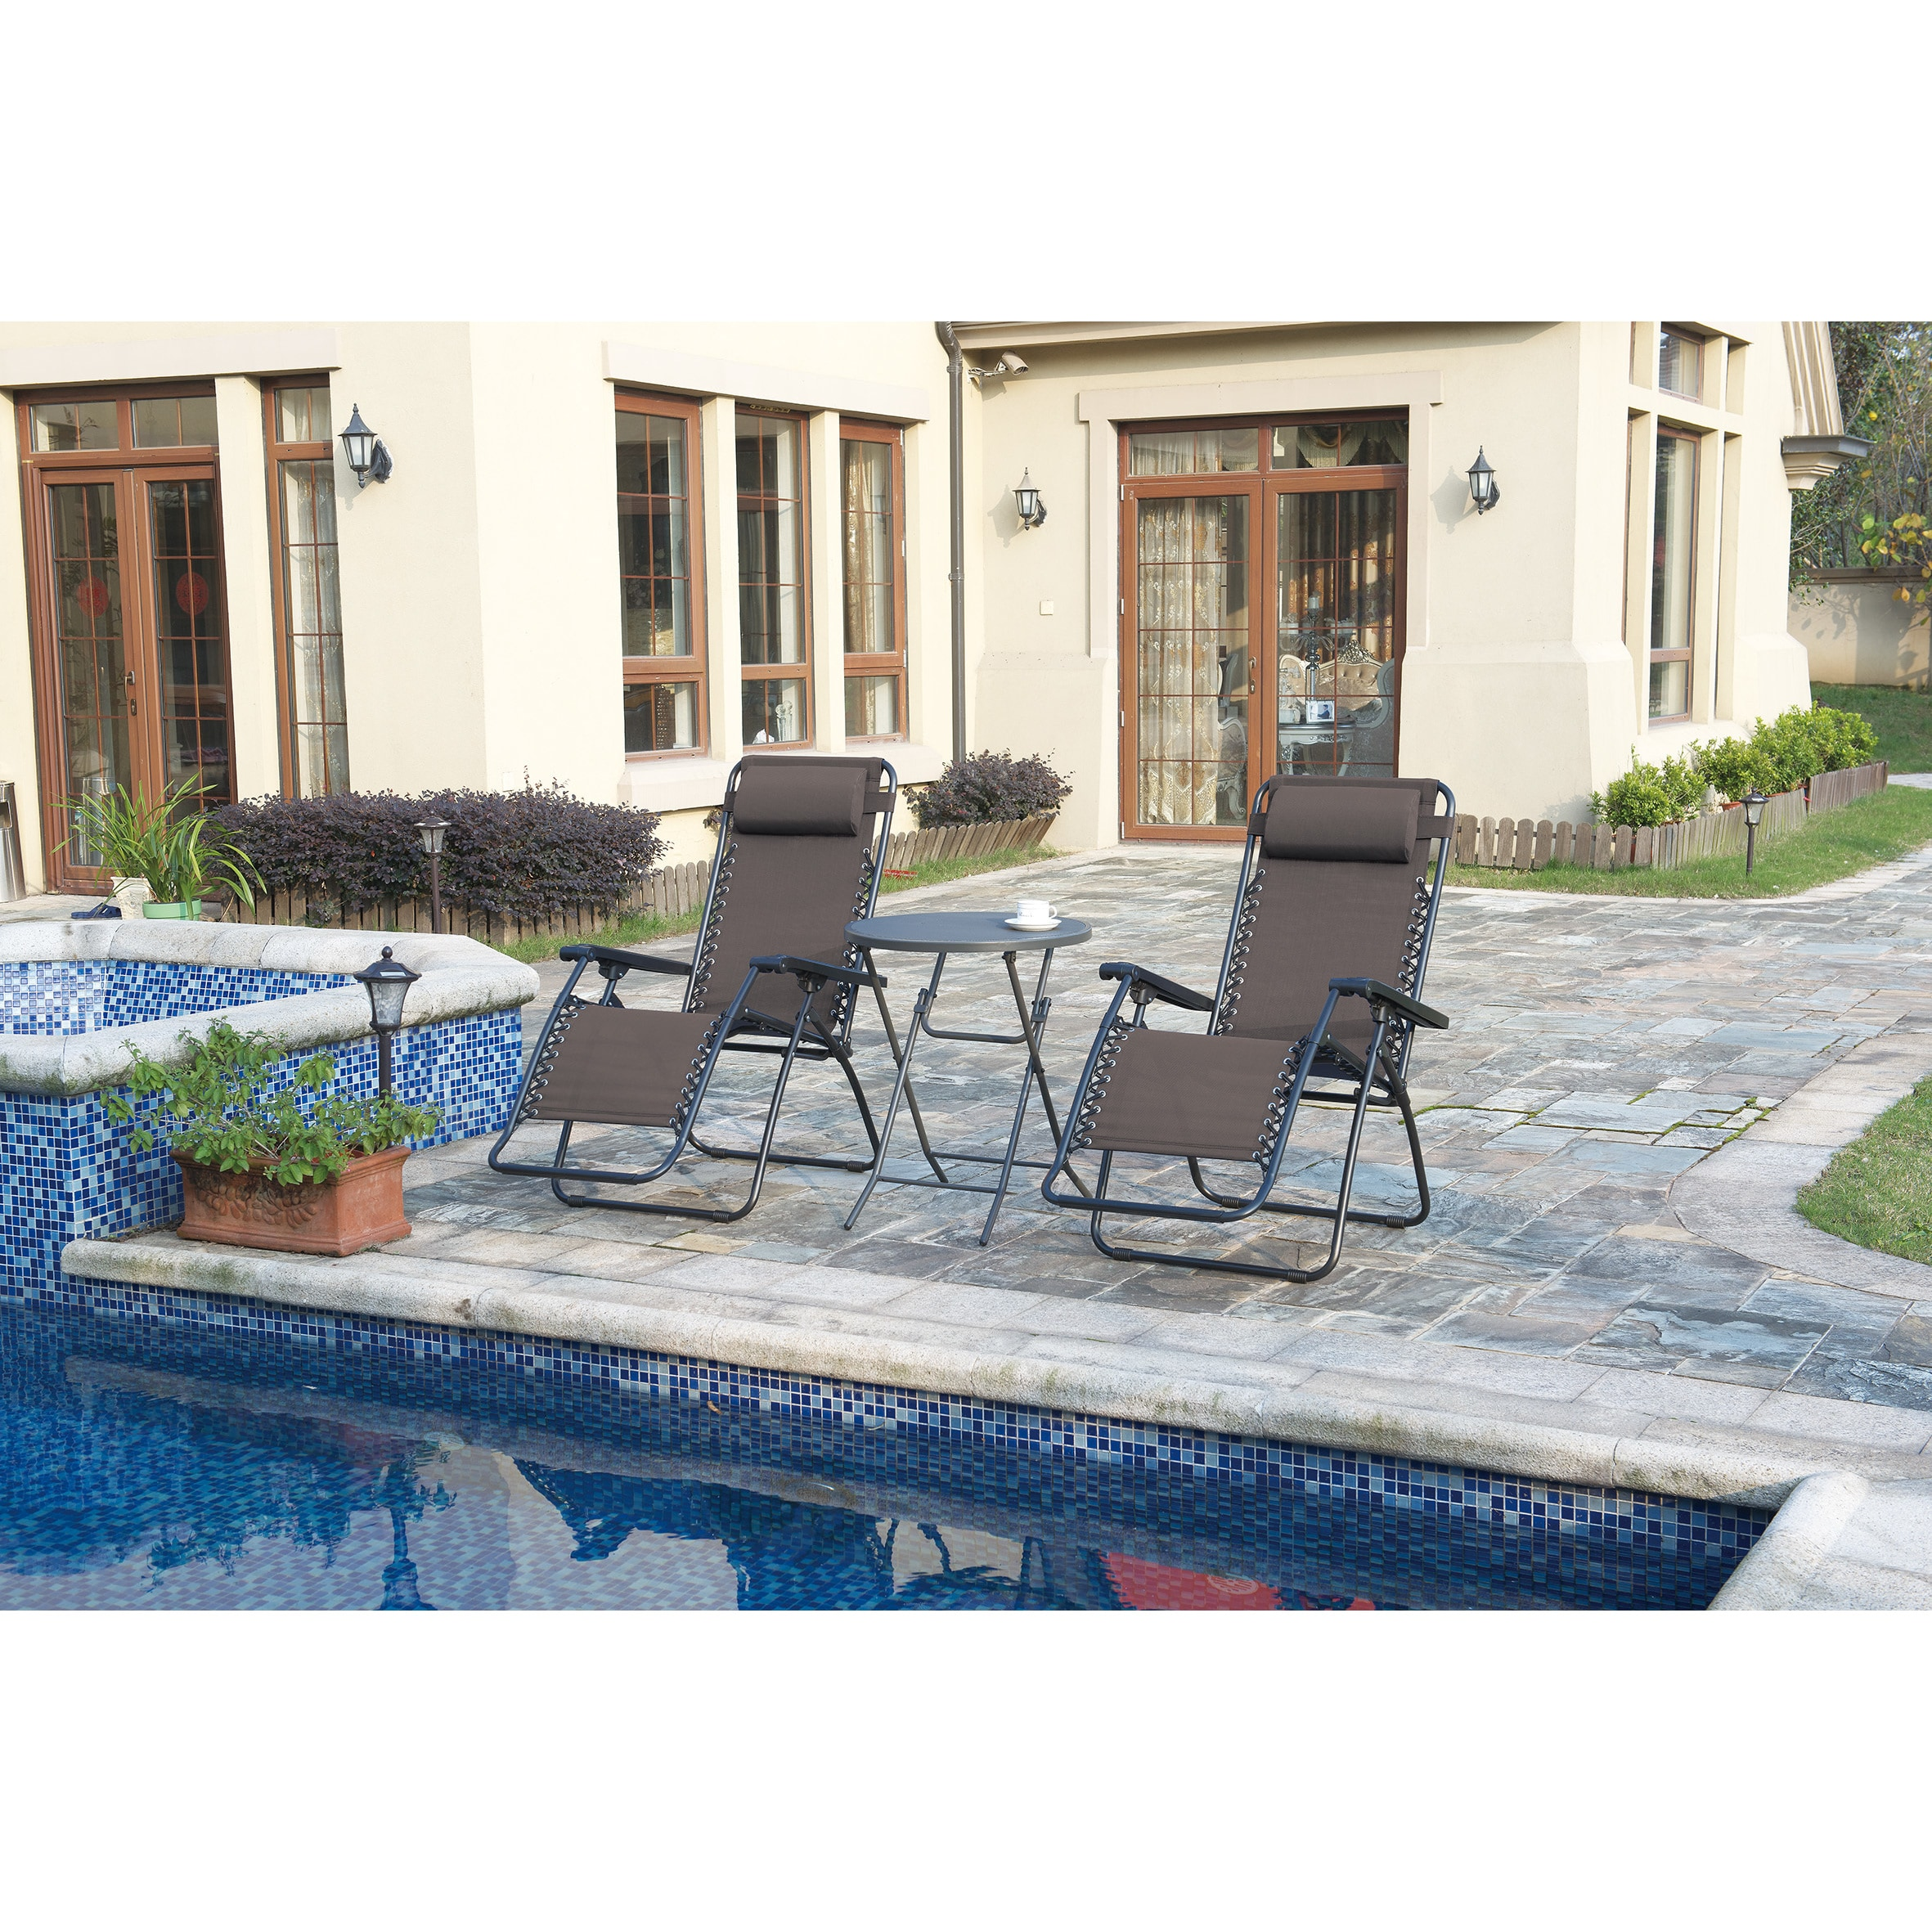 Poundex Lizkona All Weather Outdoor Foldable Zero Gravity Chairs With Headrest Set Of 2 Free Shipping Today 22669421